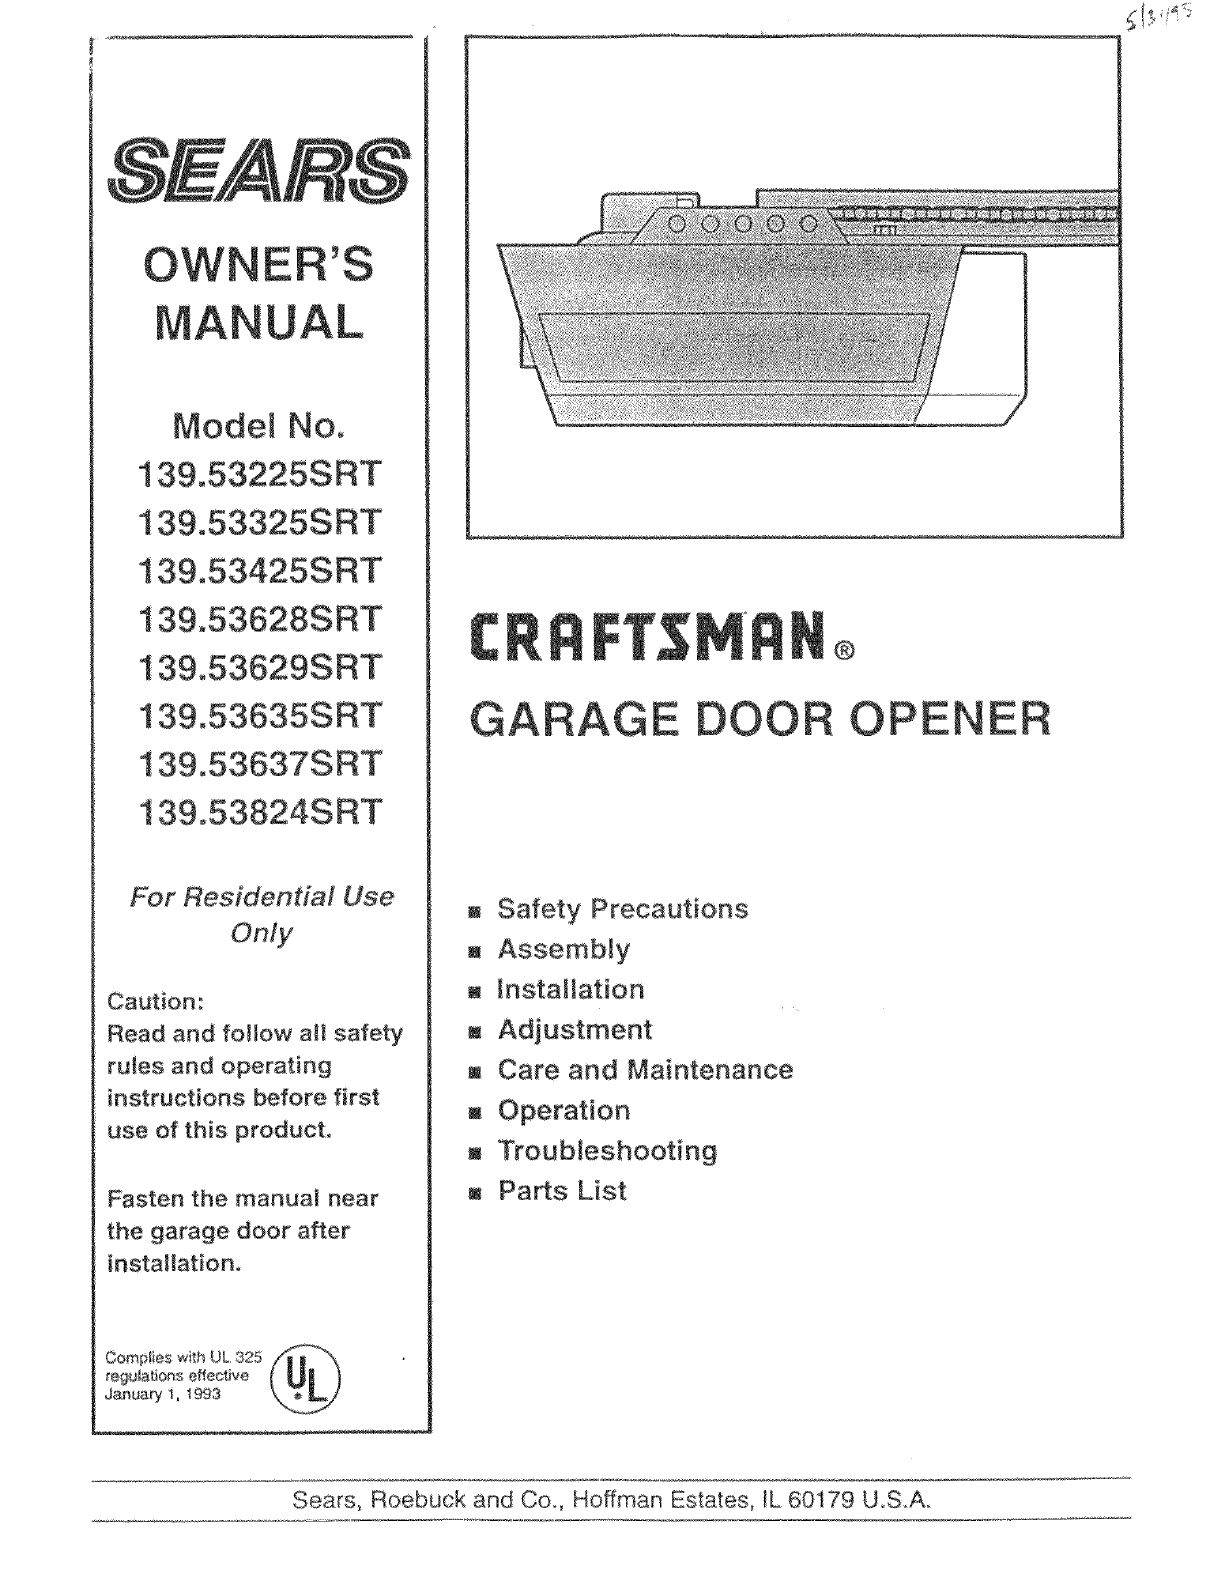 Sears craftsman garage door opener troubleshooting 1 2 hp http sears craftsman garage door opener troubleshooting 1 2 hp rubansaba